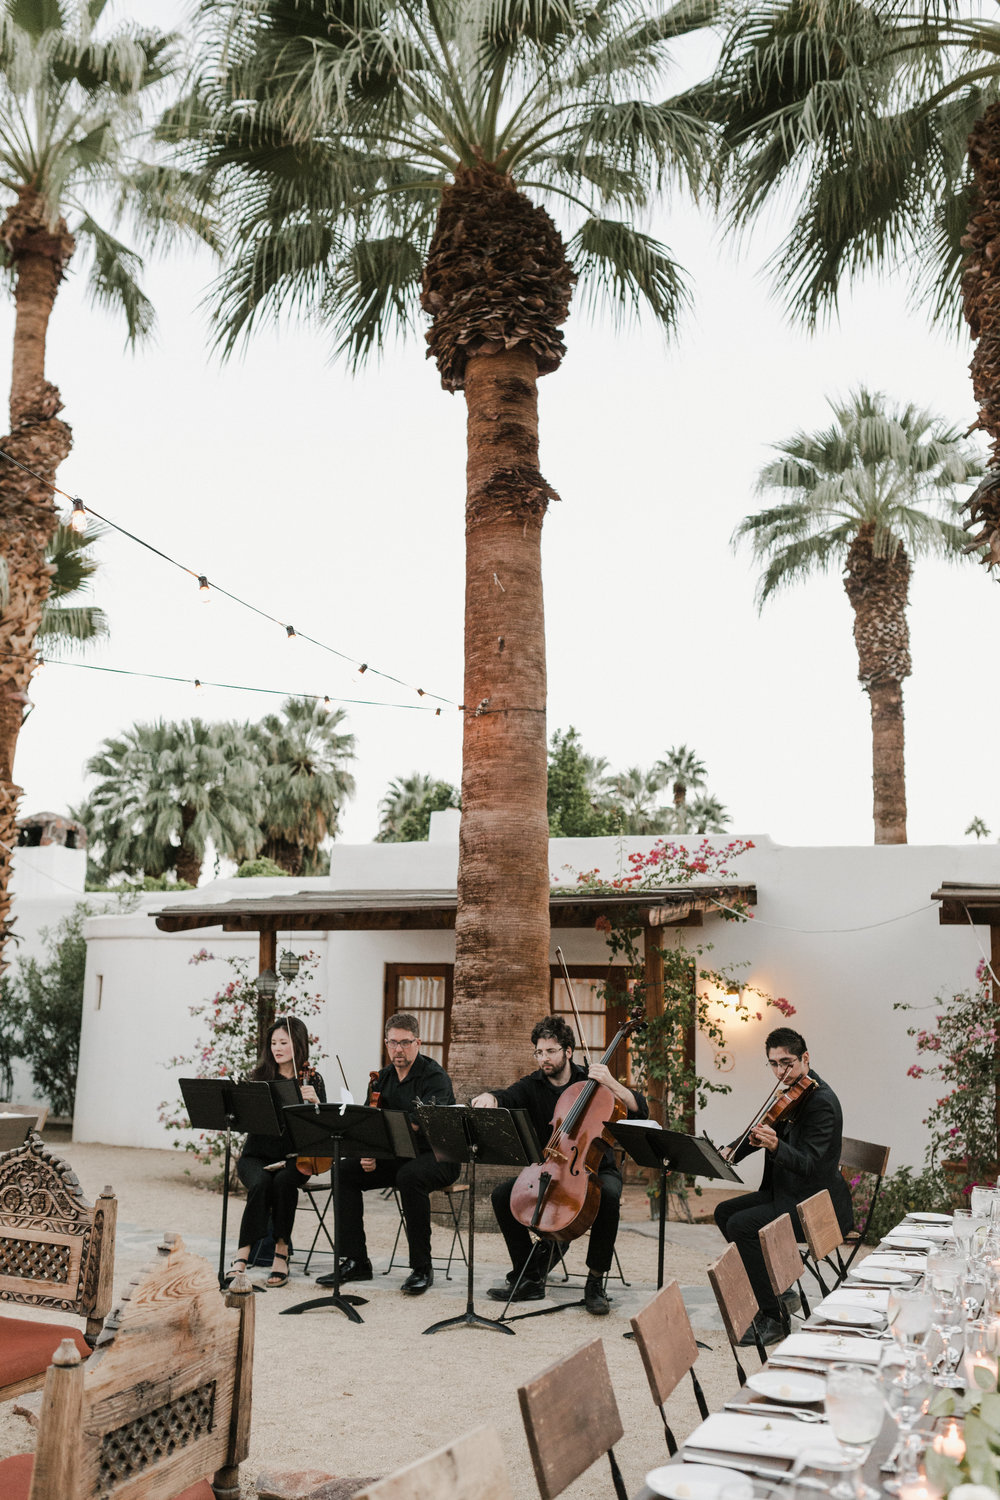 Photo Credit: Morgan Hydinger (morganhydinger.com). Korakia Pensione, Palm Springs